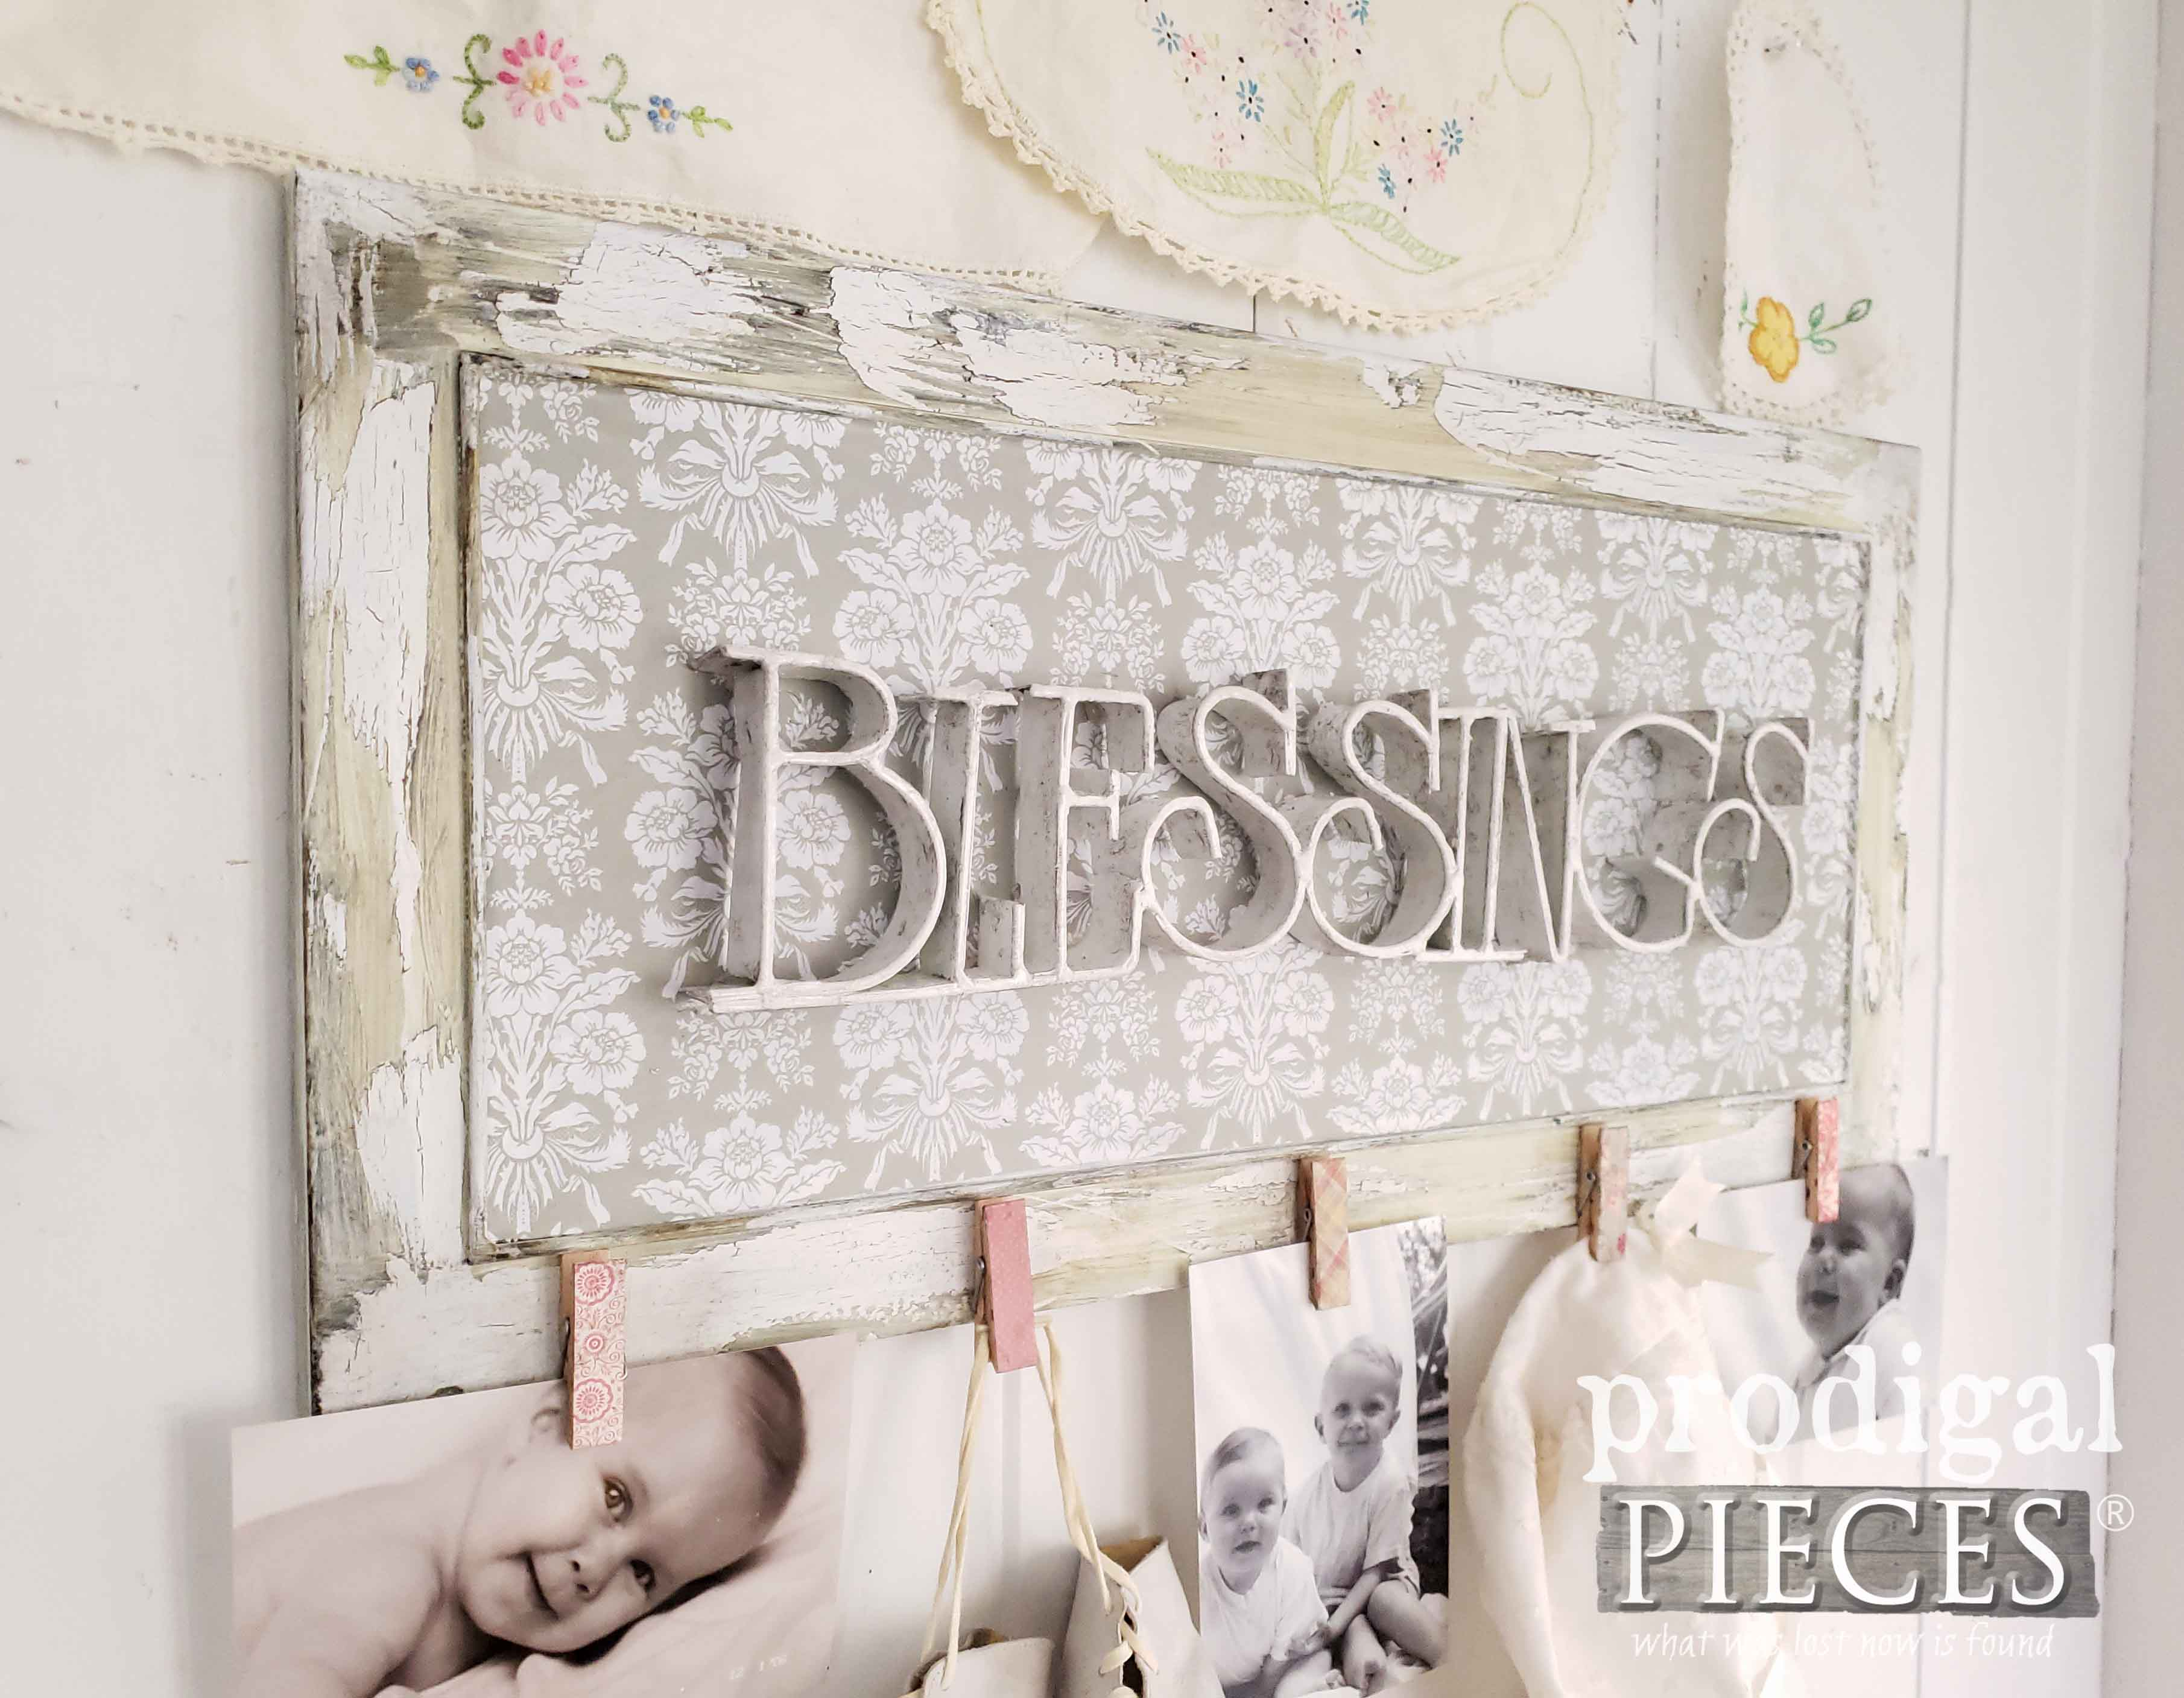 Blessings Wall Art Photo Holder for your Home Decor by Larissa of Prodigal Pieces | prodigalpieces.com